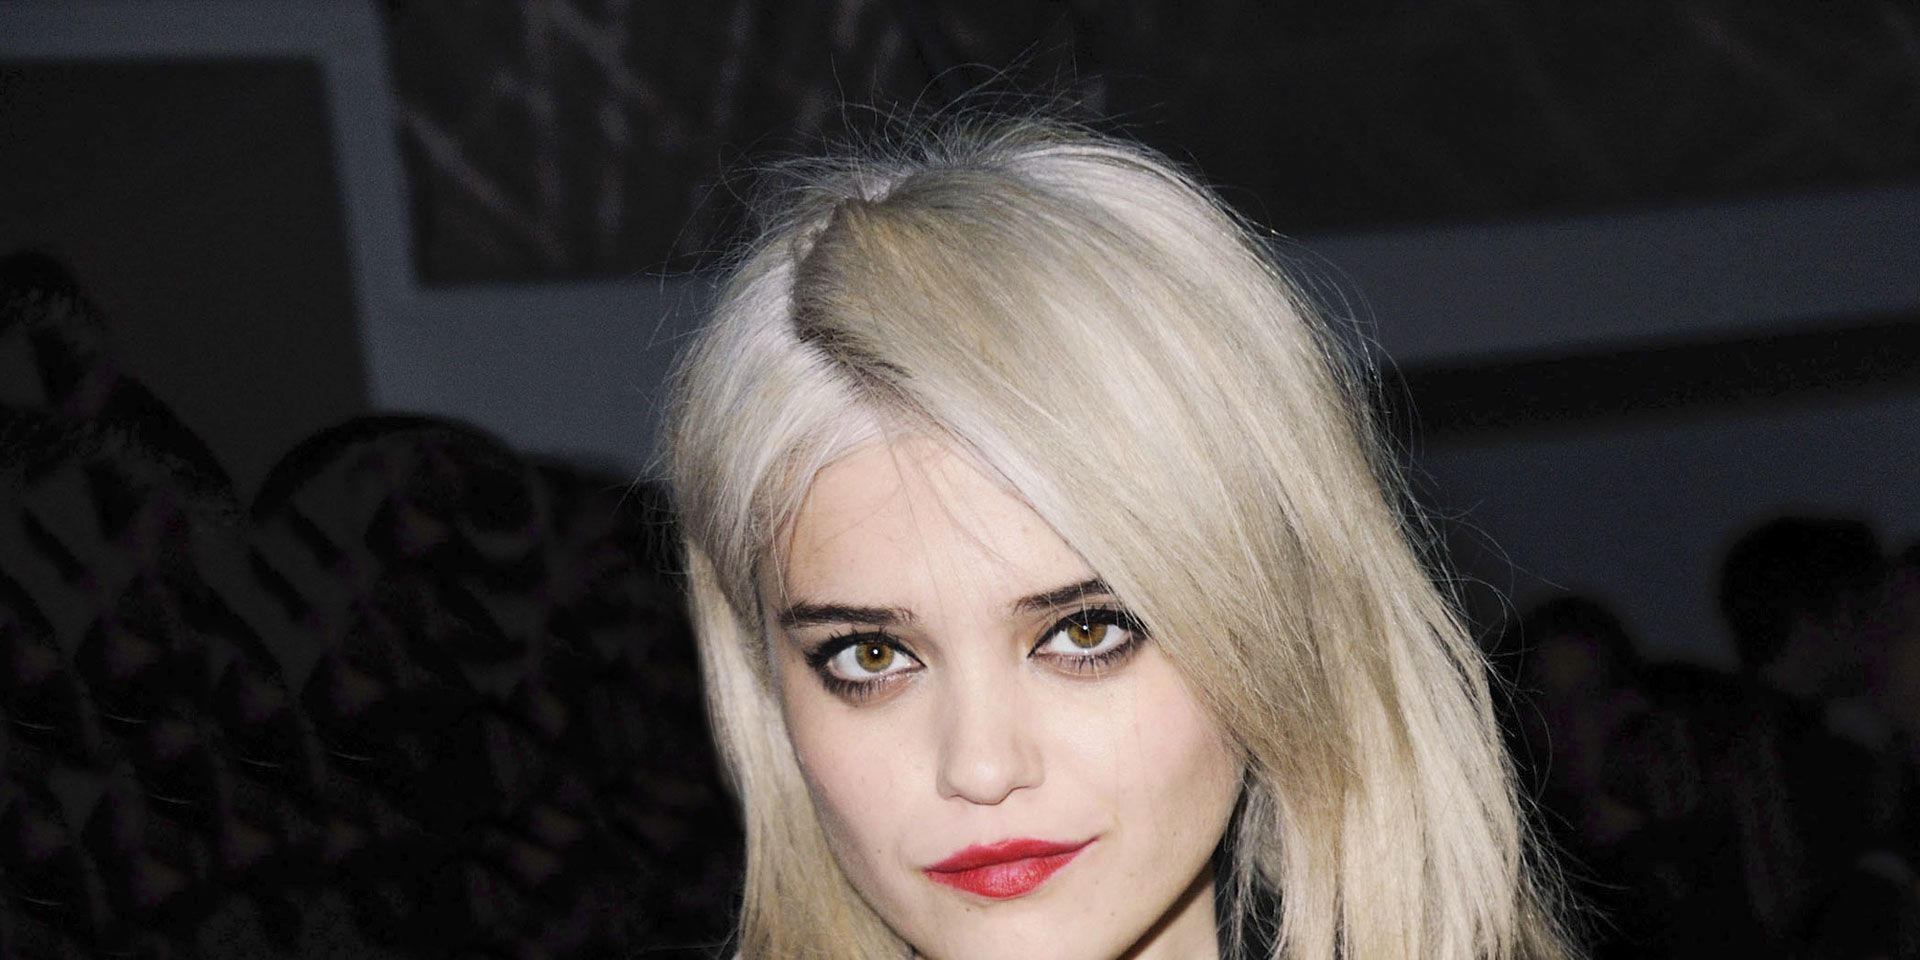 Fashion Resume: Sky Ferreira